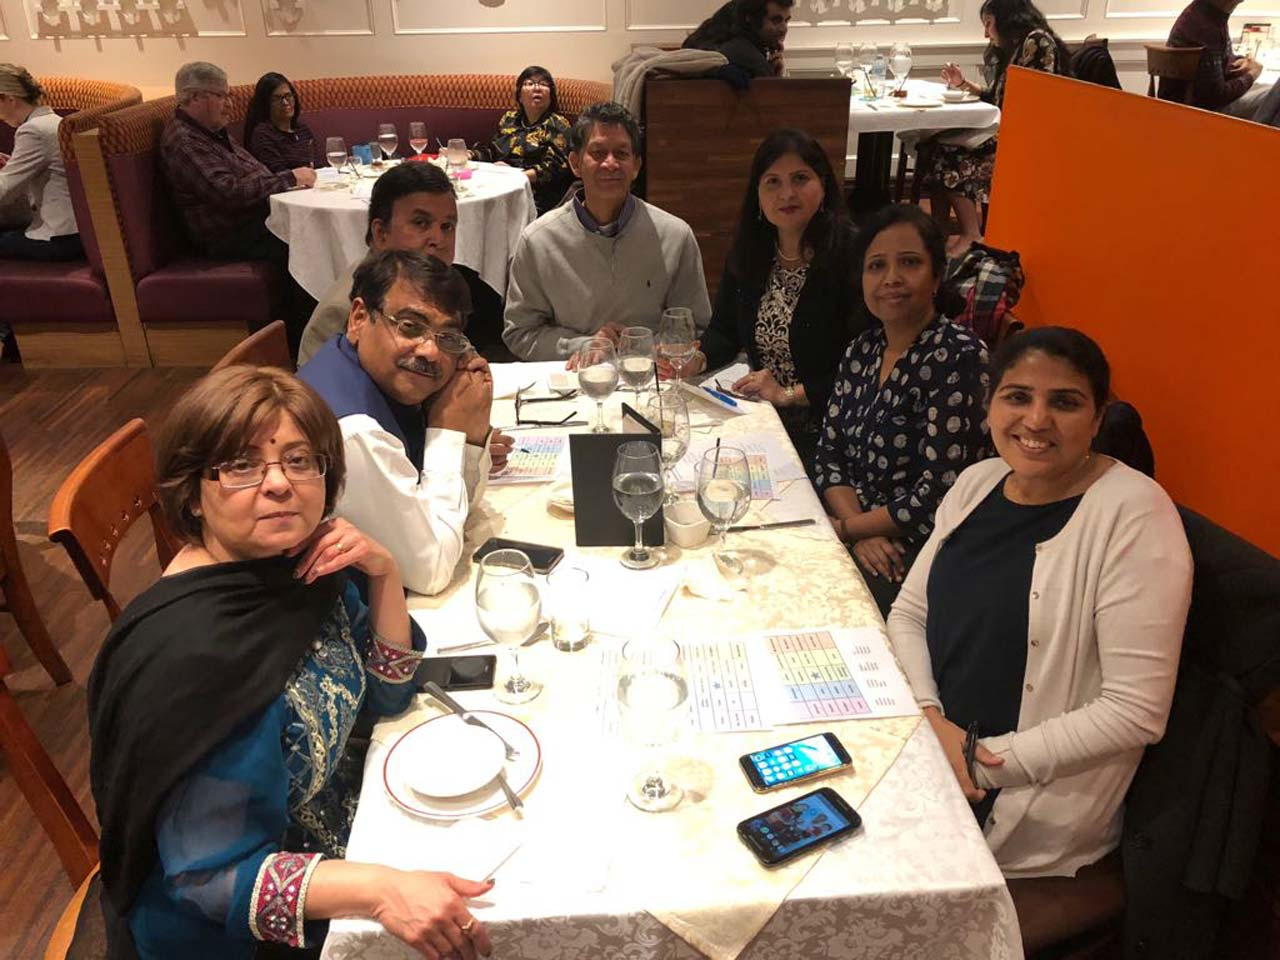 Fr L to R: Nita Sharma, Karan Yadav, Vanson Ananthnarayanan, Jay and Kiran Lal, Buvana Ananthnarayanan, and Savitri Yadav. Mark and Aida Bowhay and Ghonee Thew on the back table